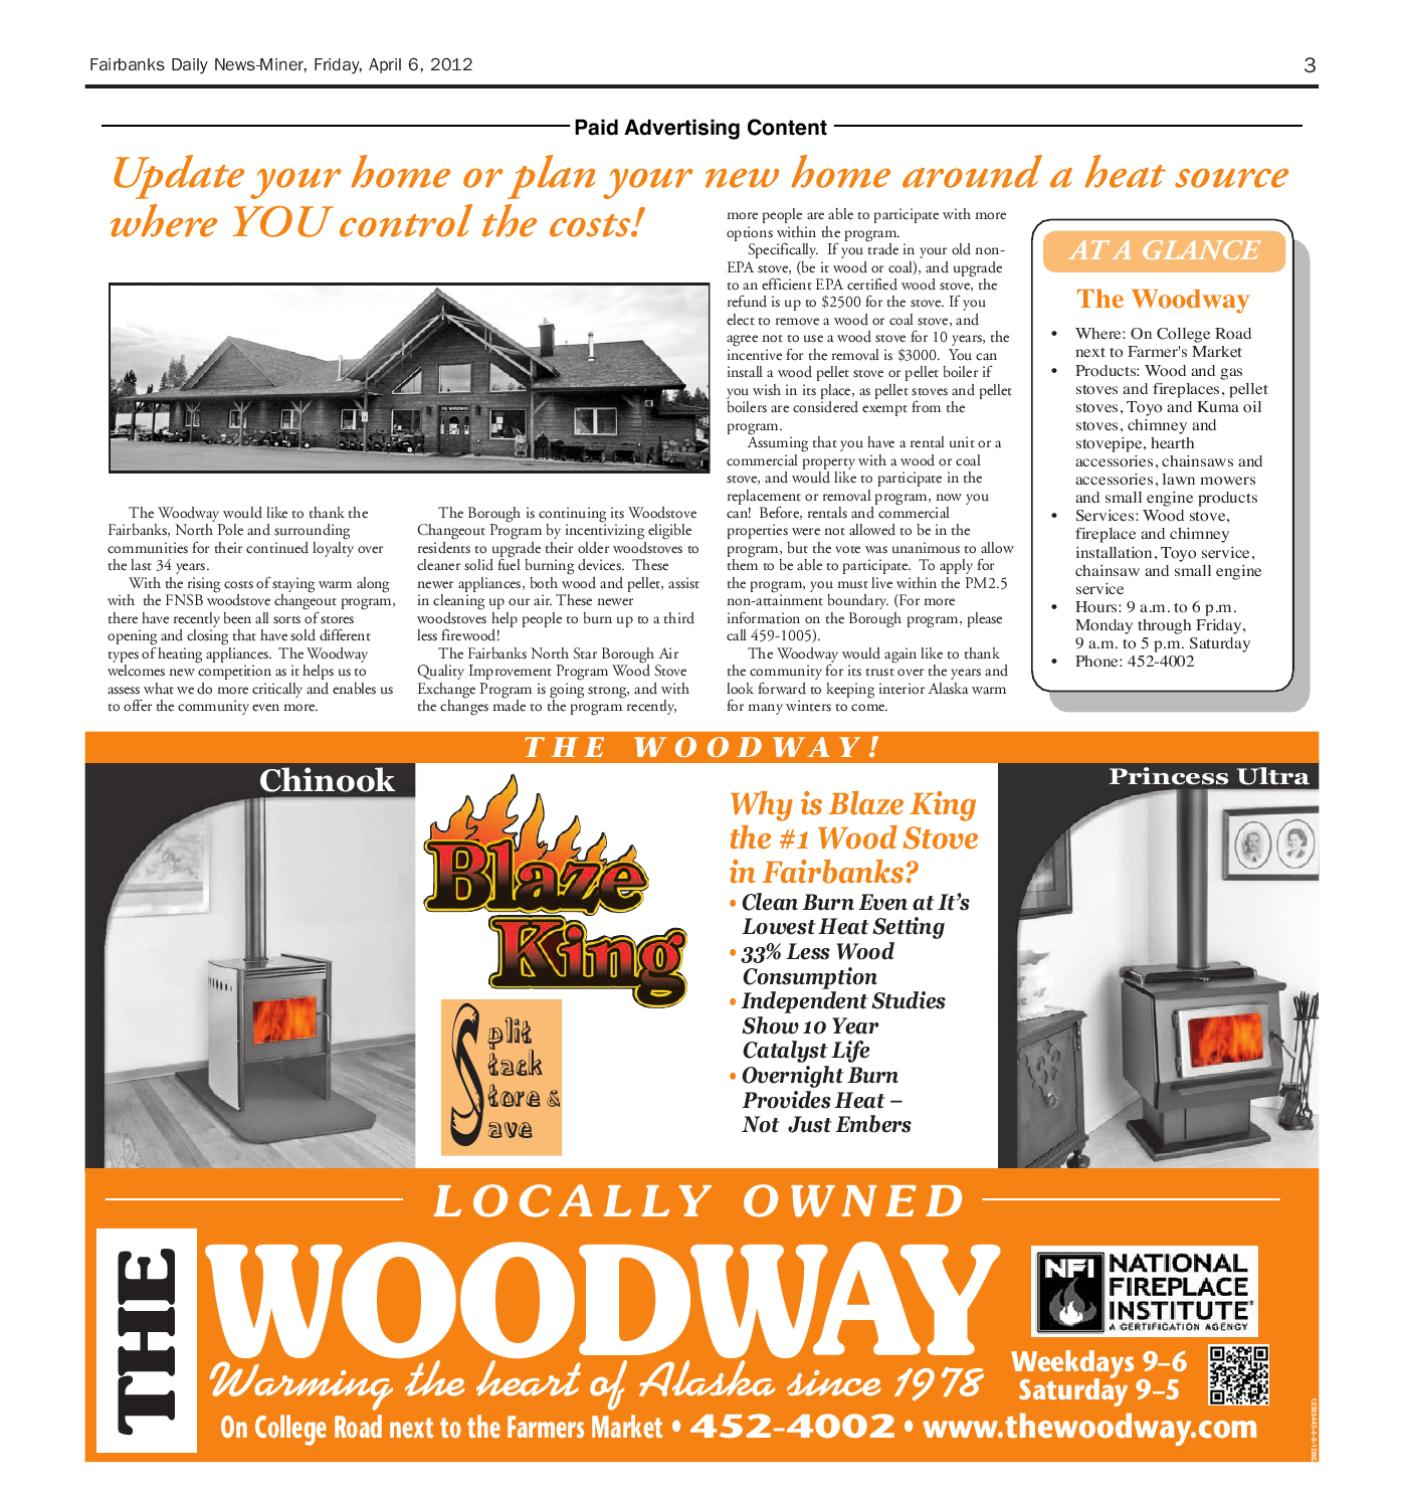 Building, Homes & Garden by Fairbanks Daily News-Miner - issuu